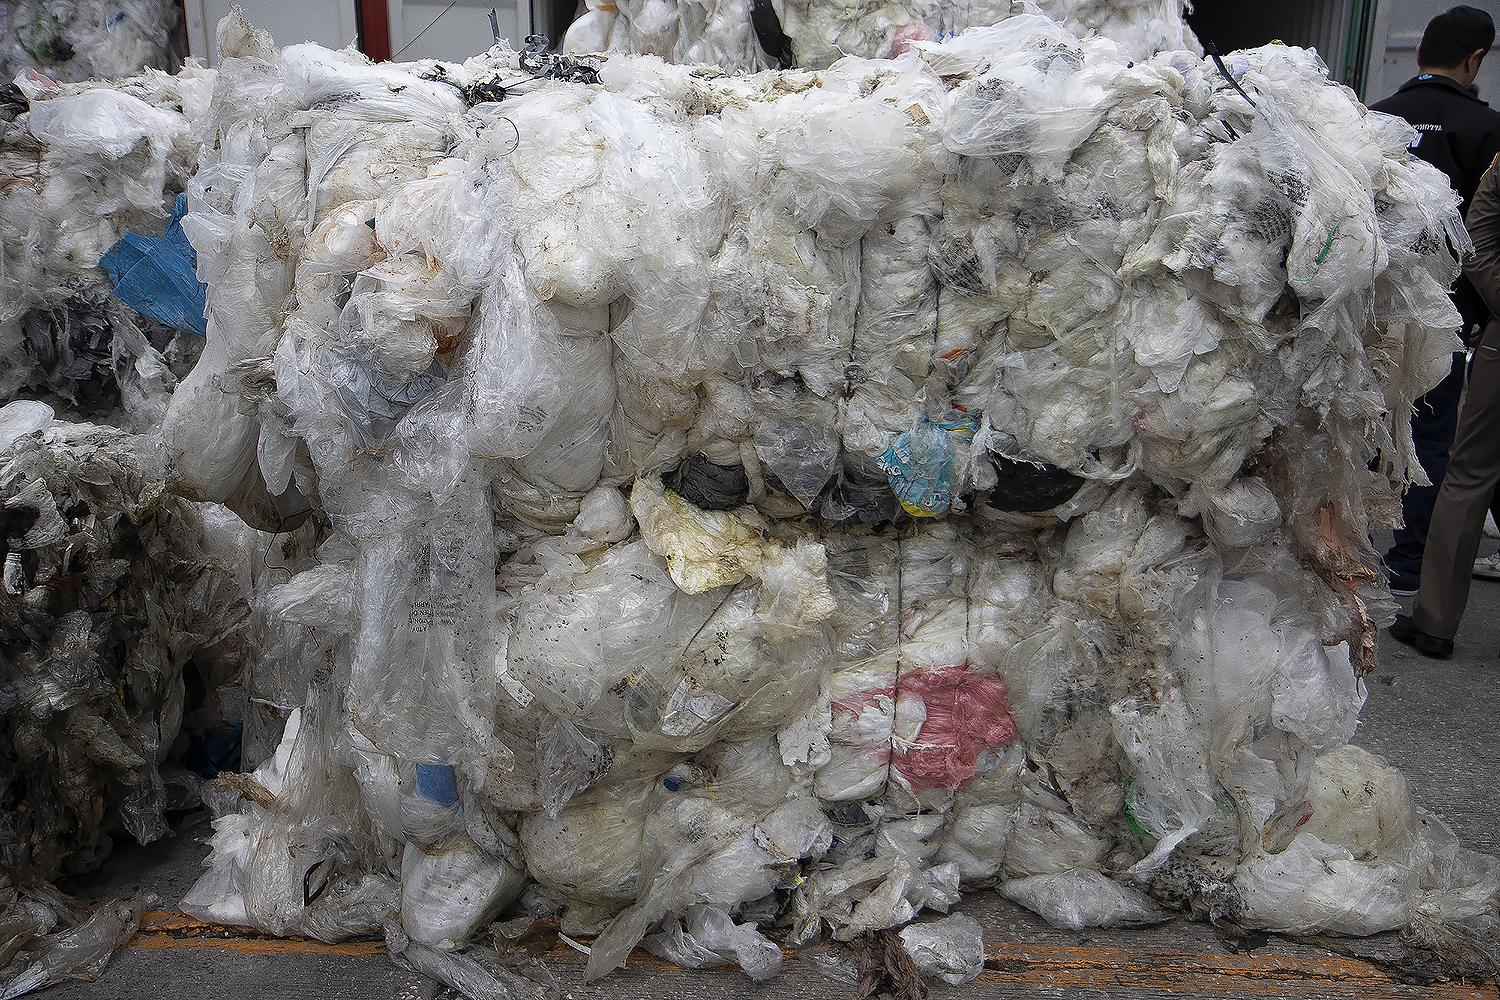 Plastic waste is a growing problem that has been exacerbated by a huge spike in the use of disposable packaging for deliveries during Covid lockdowns. Photo: Karnt Thassanaphak